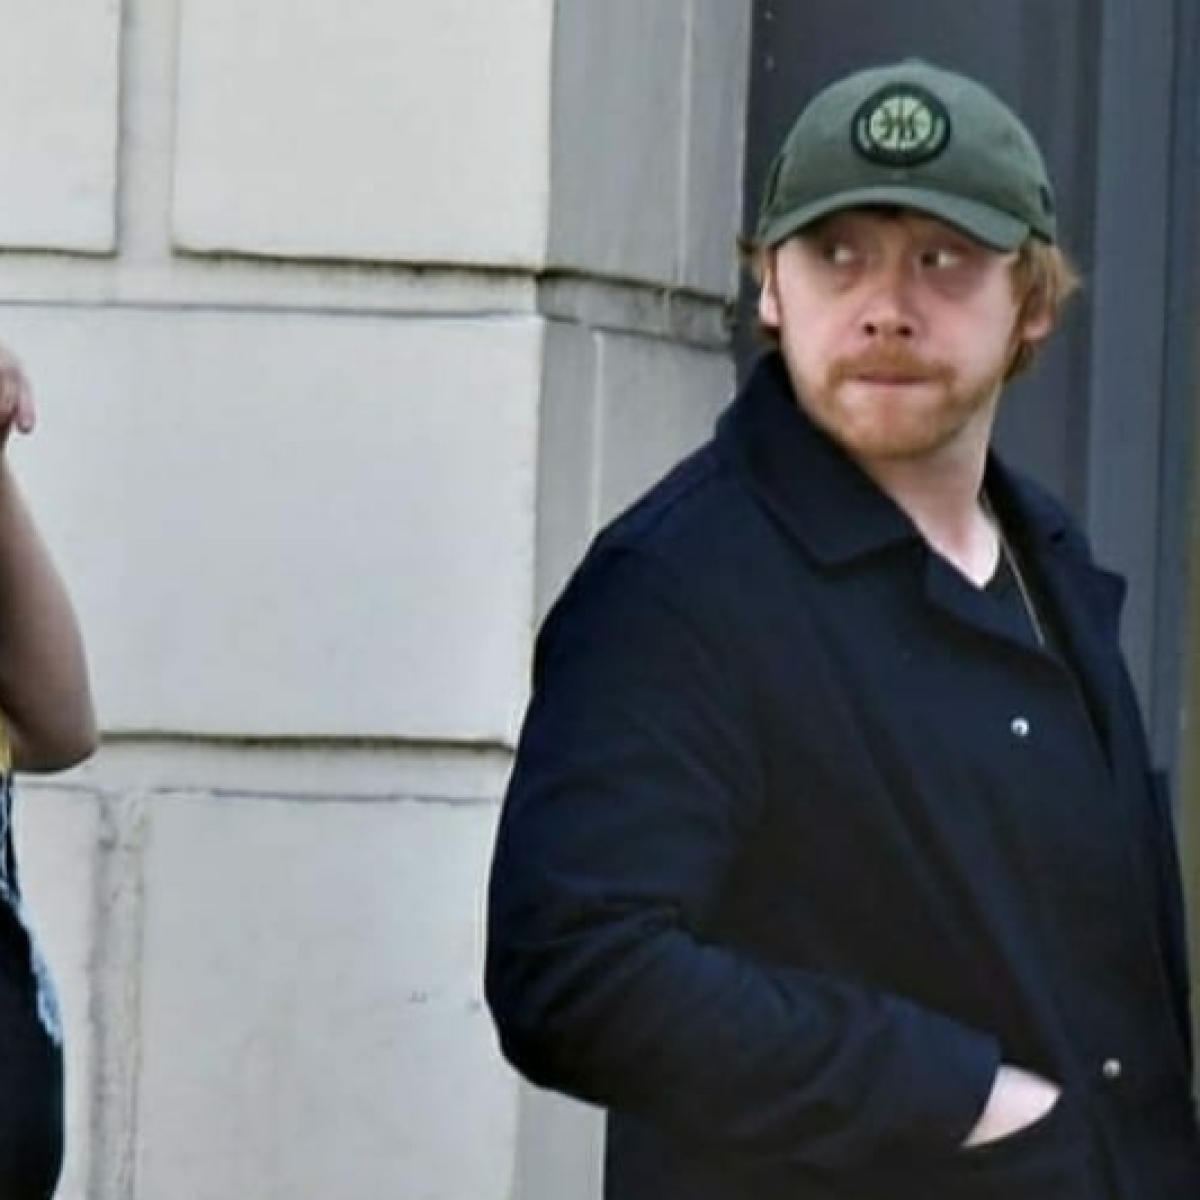 'Harry Potter' actor Rupert Grint expecting first child with girlfriend Georgia Groome